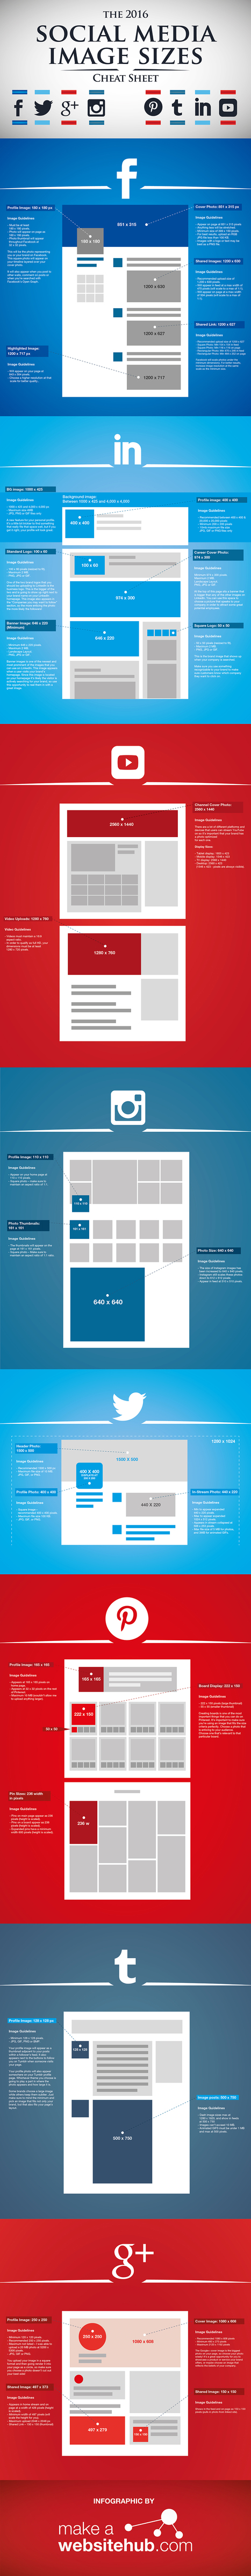 2016 Social Media Image Sizes Cheat Sheet | Social Media in Manufacturing Today | Scoop.it